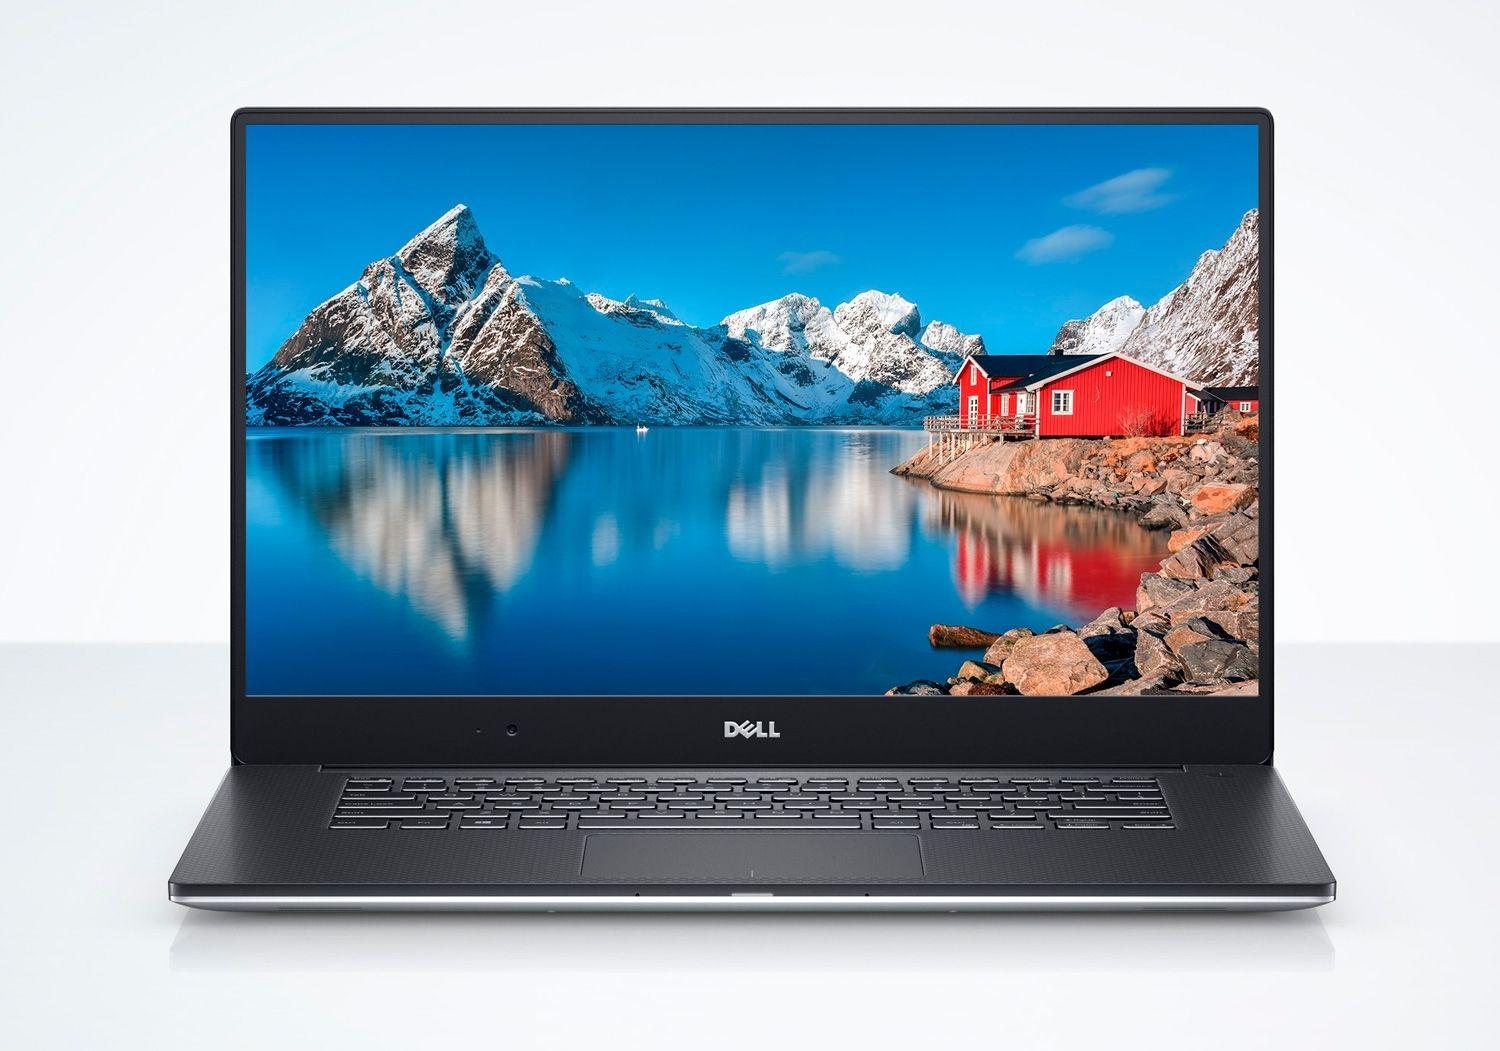 Details about Dell Precision 15 M5520 i7-6820HQ 16GB 512GB PCIe SSD UHD 4K  Touch-screen M1200